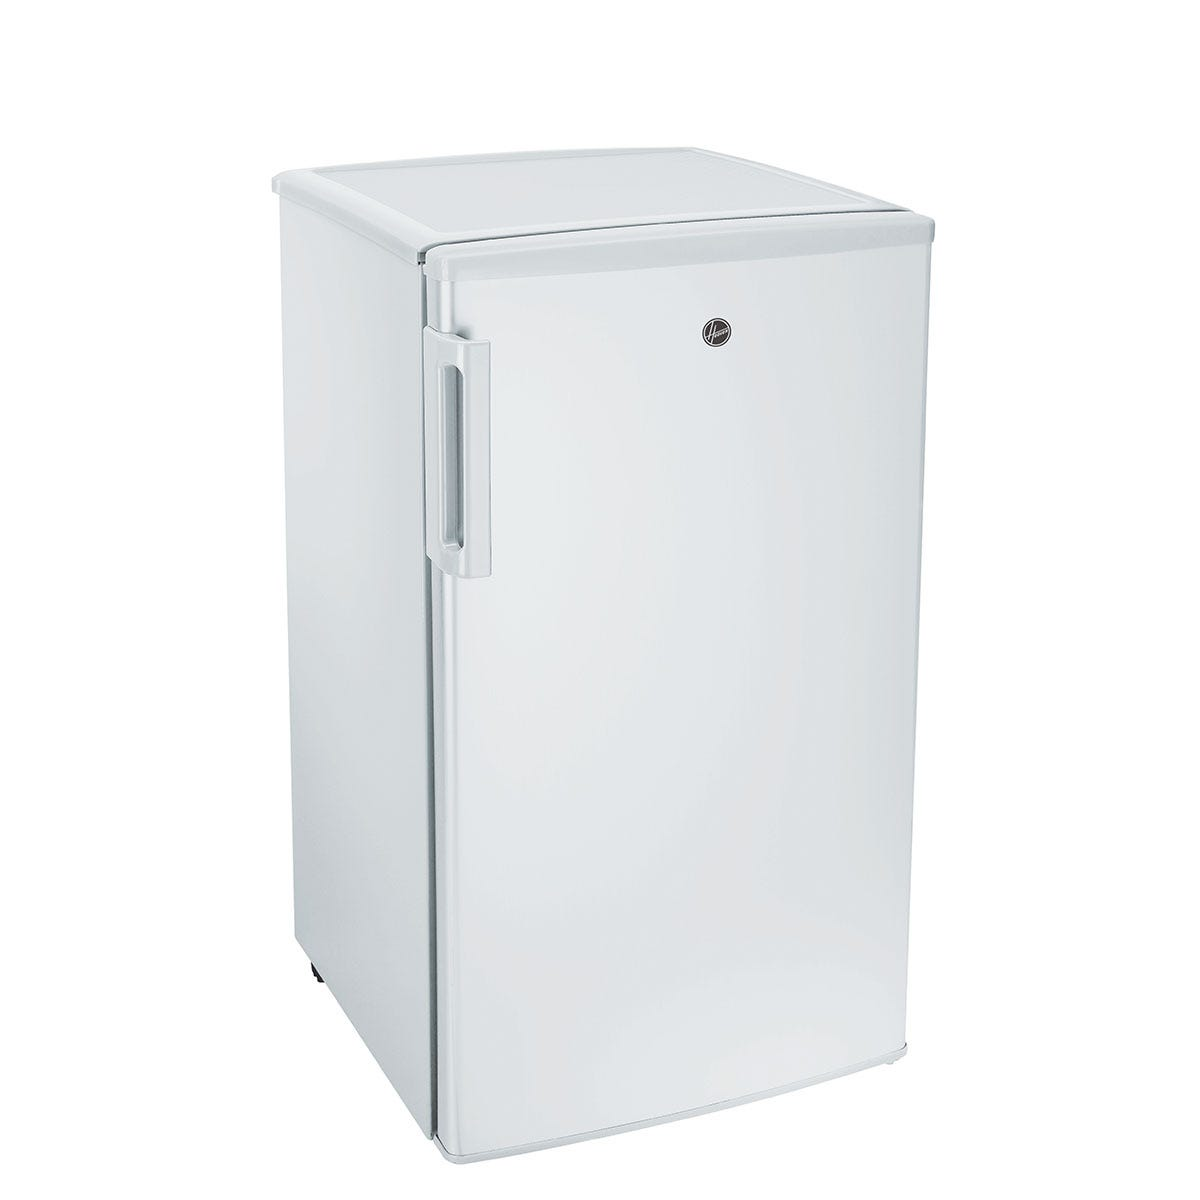 Hoover HTUP 130 WKN 49cm 64L Under Counter Freezer - White